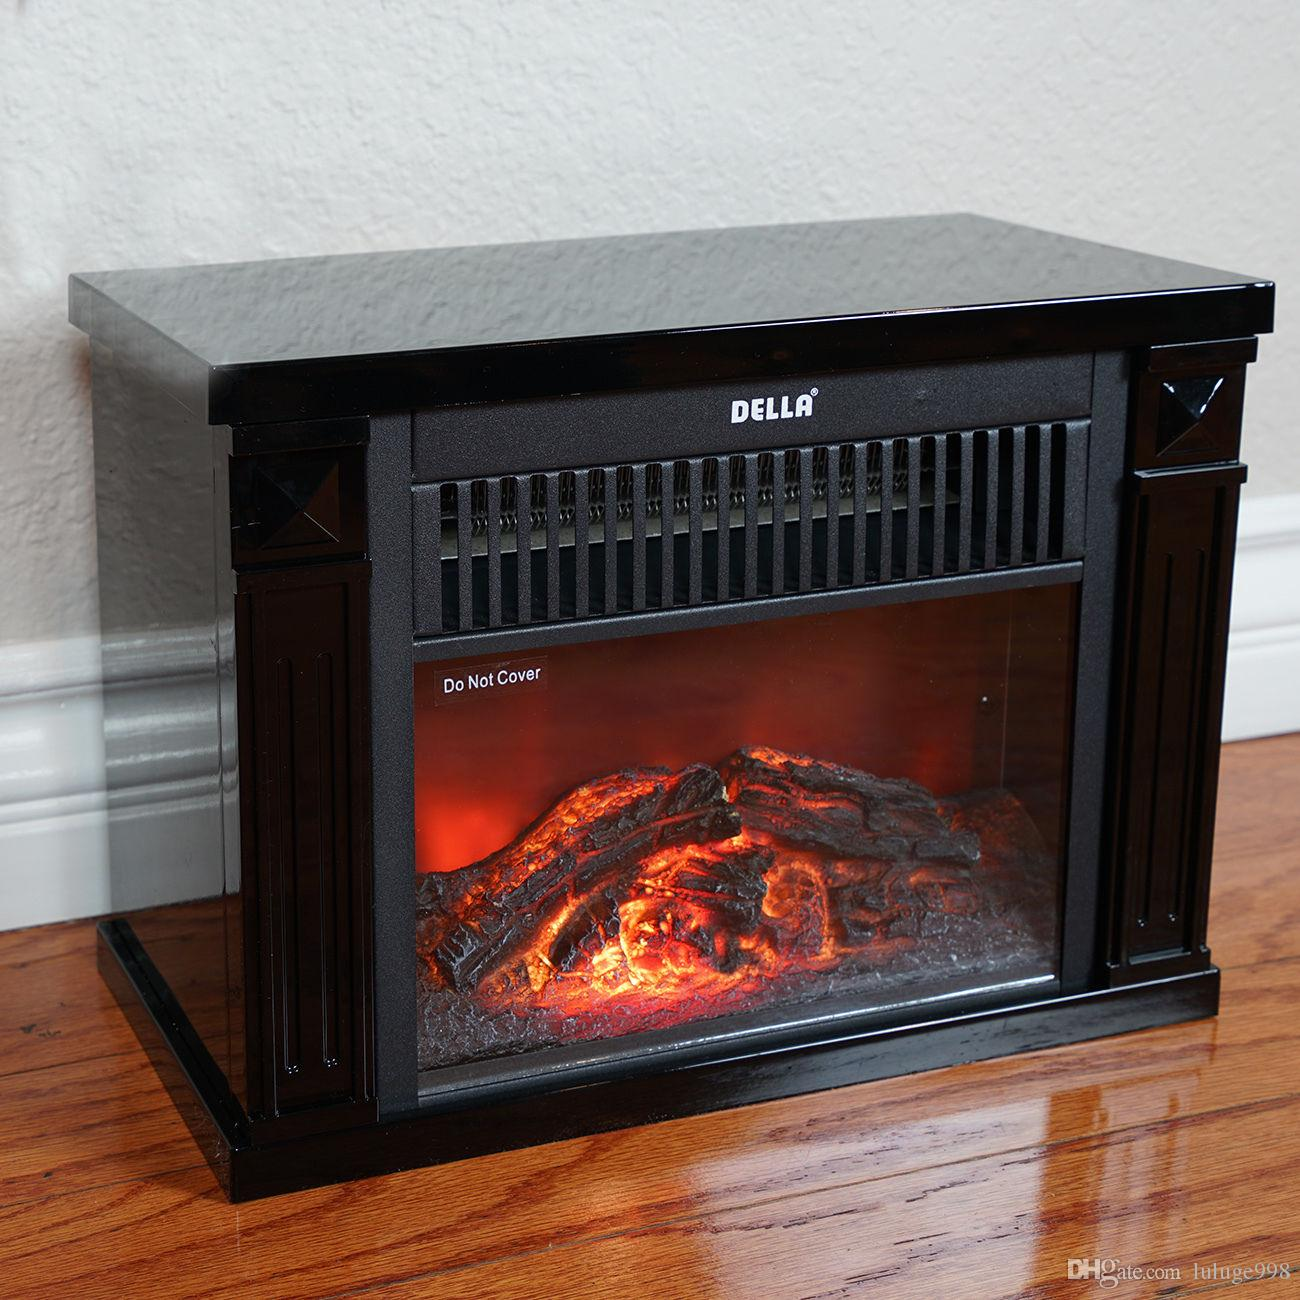 portable gry n freestanding cooling fireplaces in depot venting home electric gray b heating real the flame fireplace